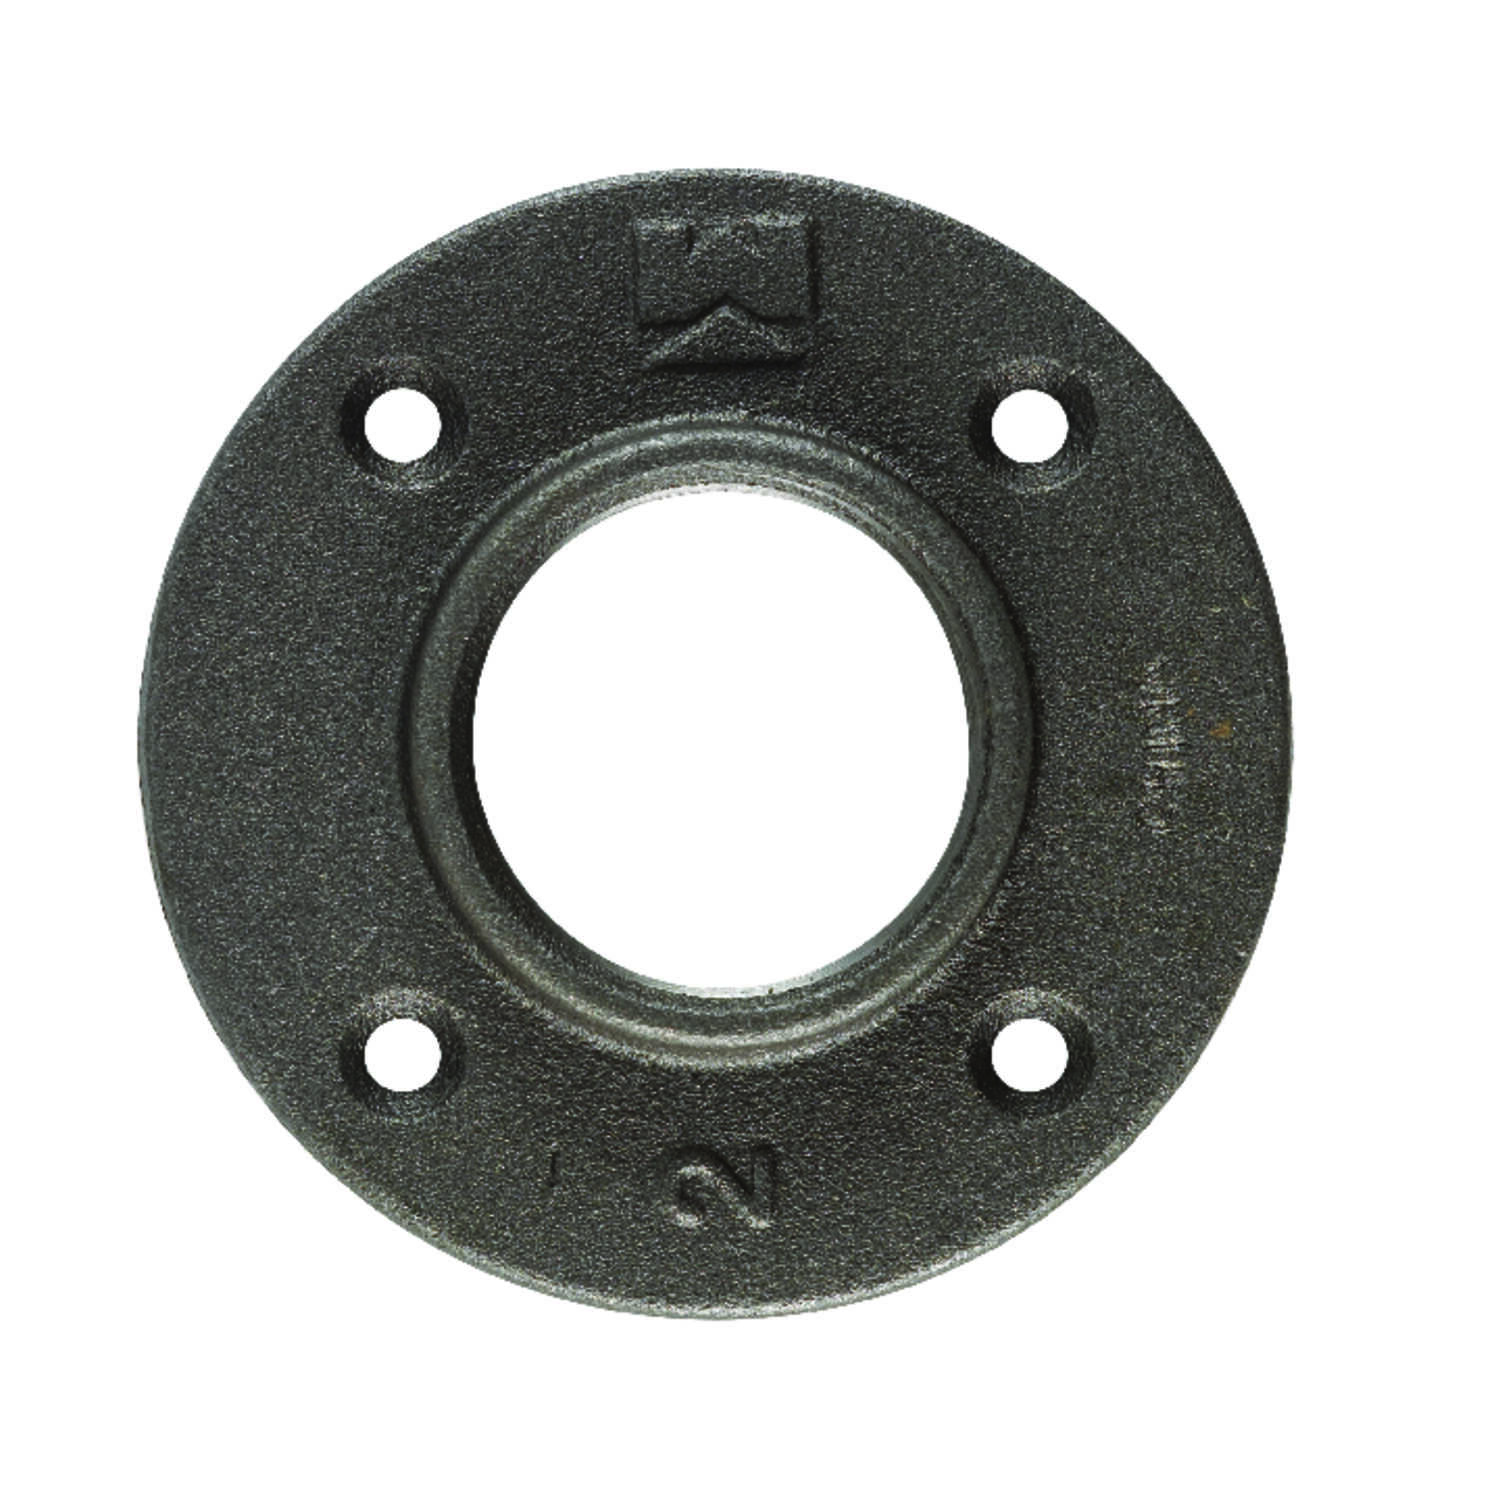 B & K  2 in. FPT   Black  Malleable Iron  Floor Flange